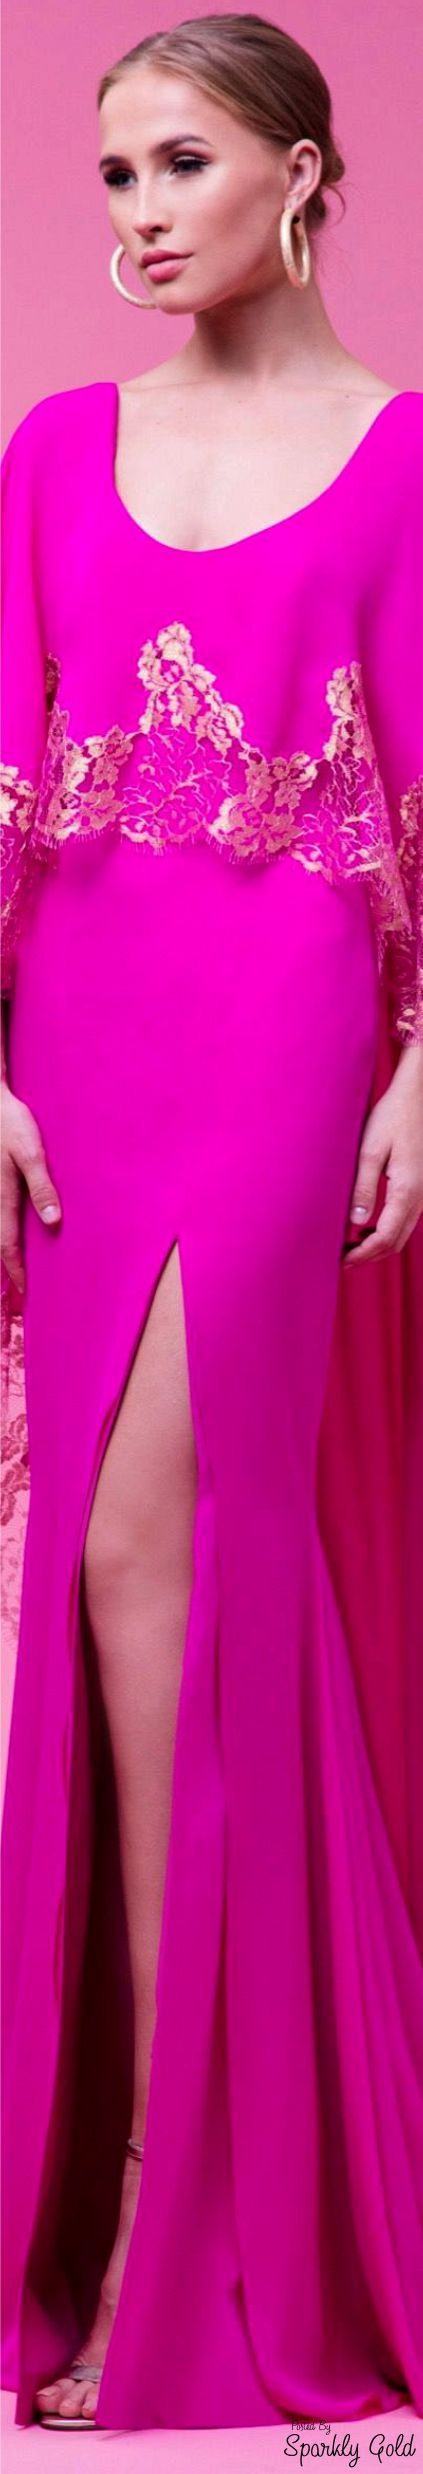 49 best Vestidos images on Pinterest | Evening gowns, Formal prom ...